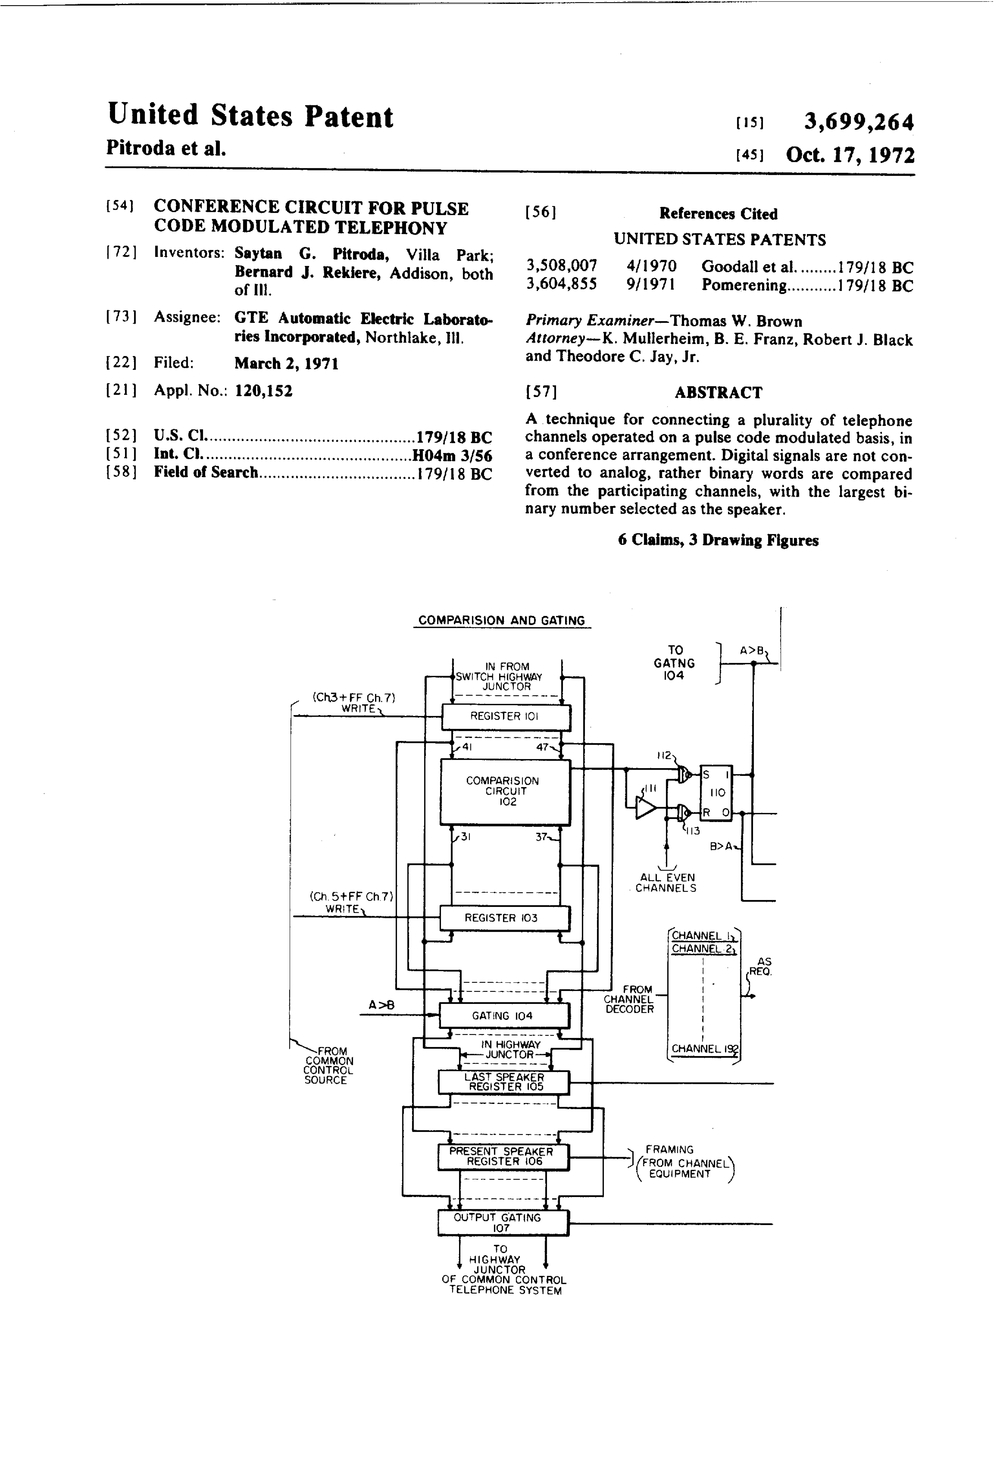 US3699264 Conference Circuit For Pulse Code Modulated Telephony.jpg